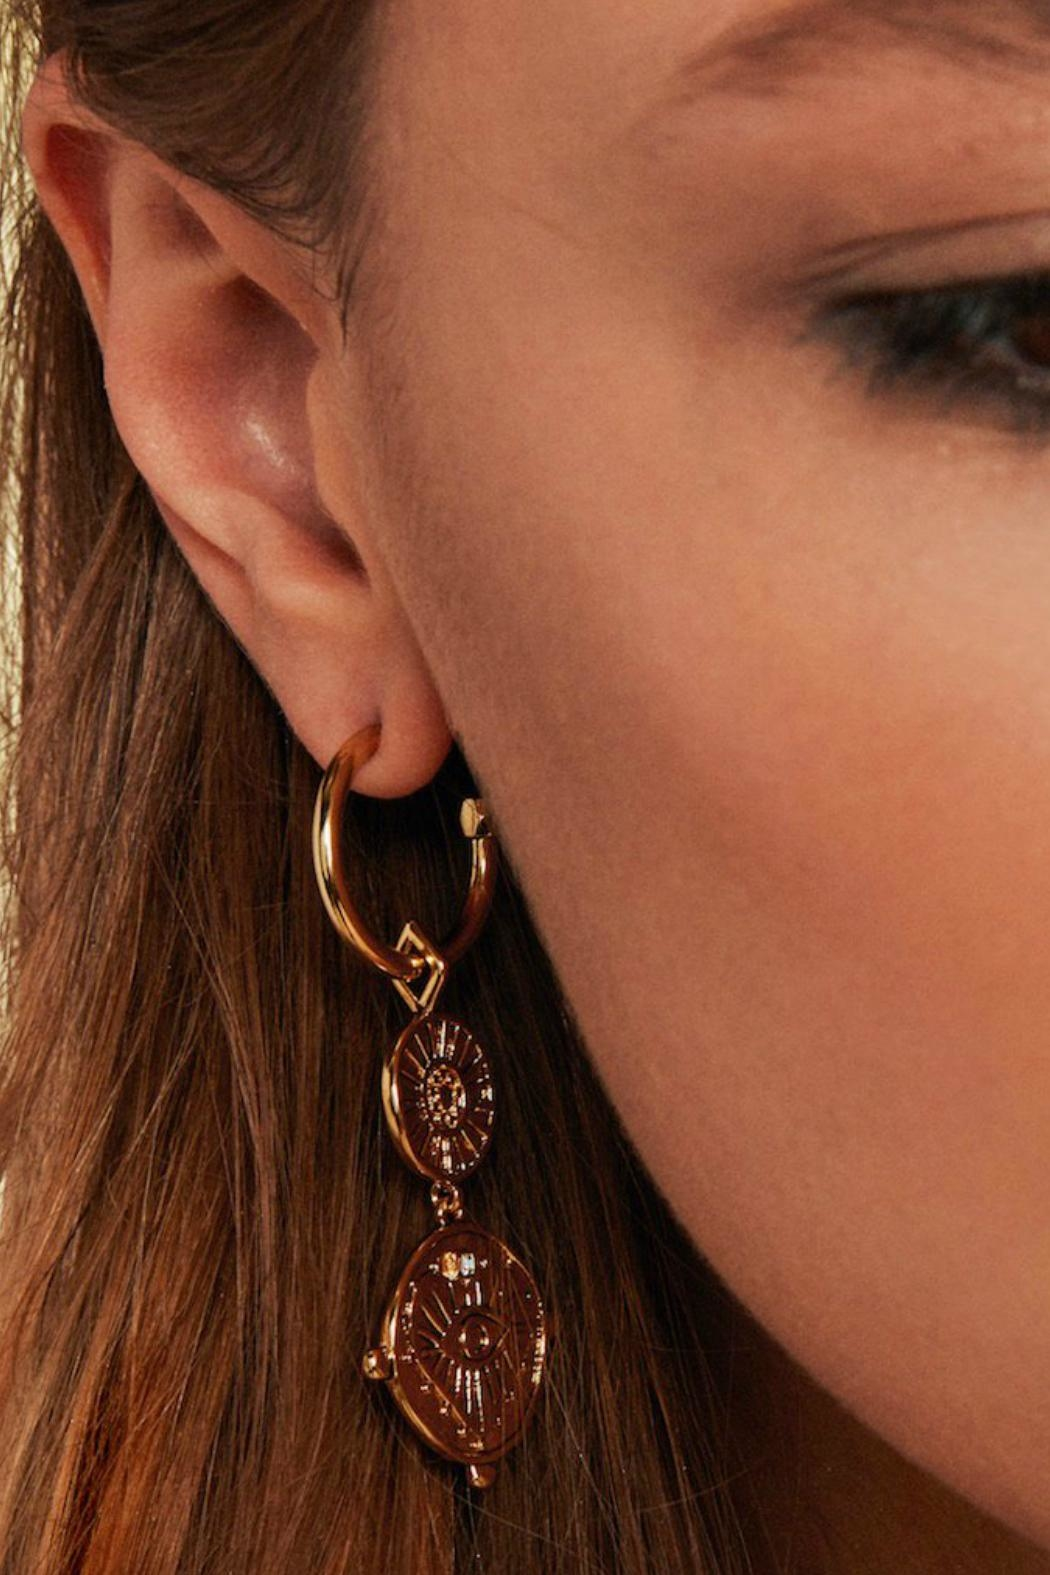 f5cd88c020b3c LUV AJ Double Coin Hoops from Texas by POE and Arrows — Shoptiques